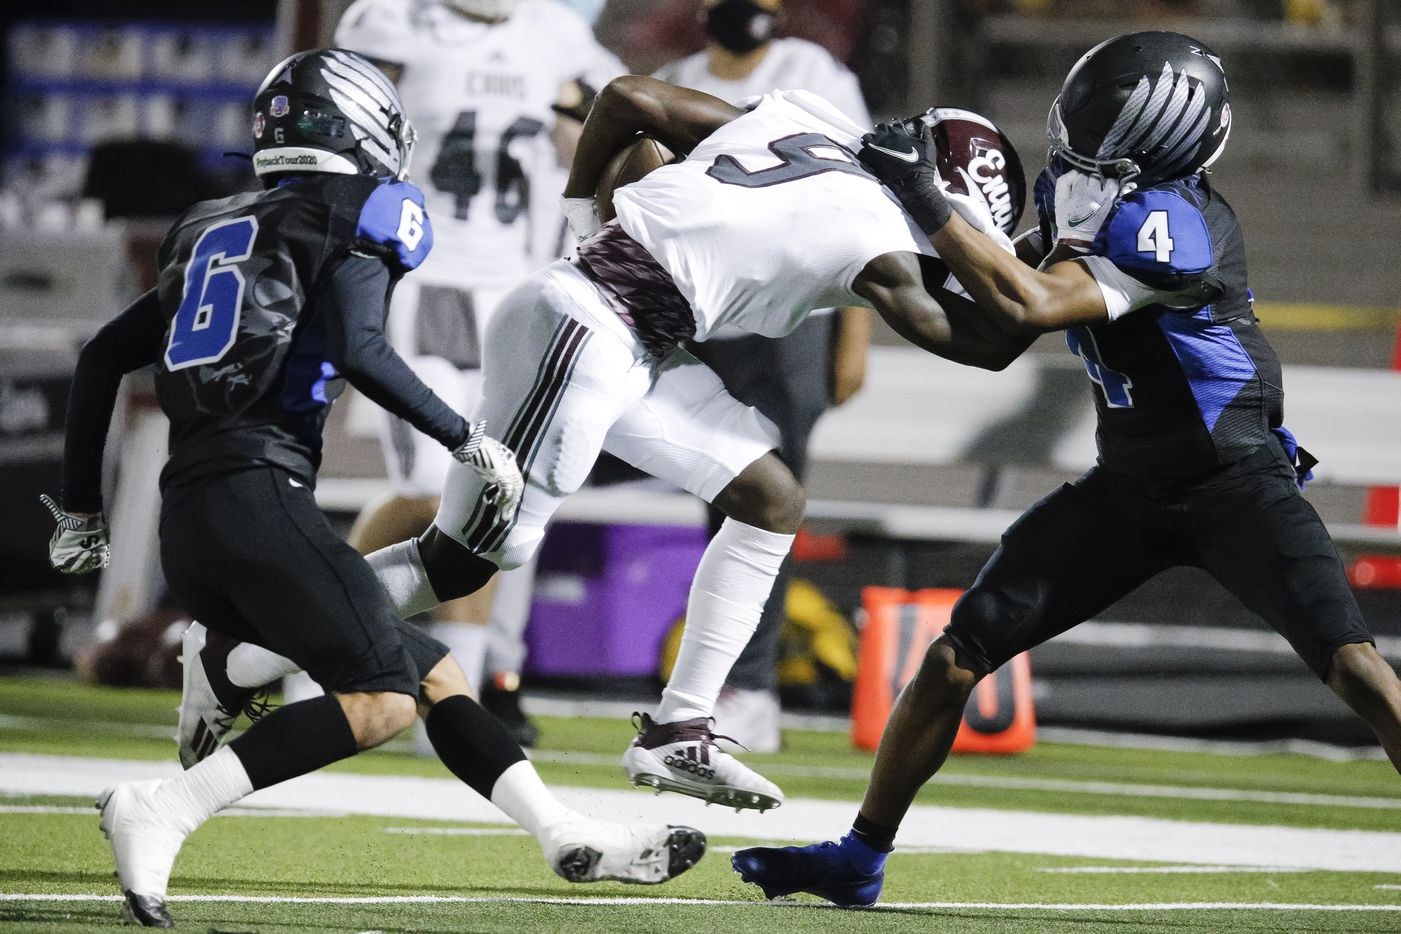 Ennis junior wide receiver Devion Beasley (9) battles North Forney senior defensive back Emarlyee Stewart (4) for space during the first half of a high school playoff football game in Forney, Thursday, November 19, 2020. (Brandon Wade/Special Contributor)